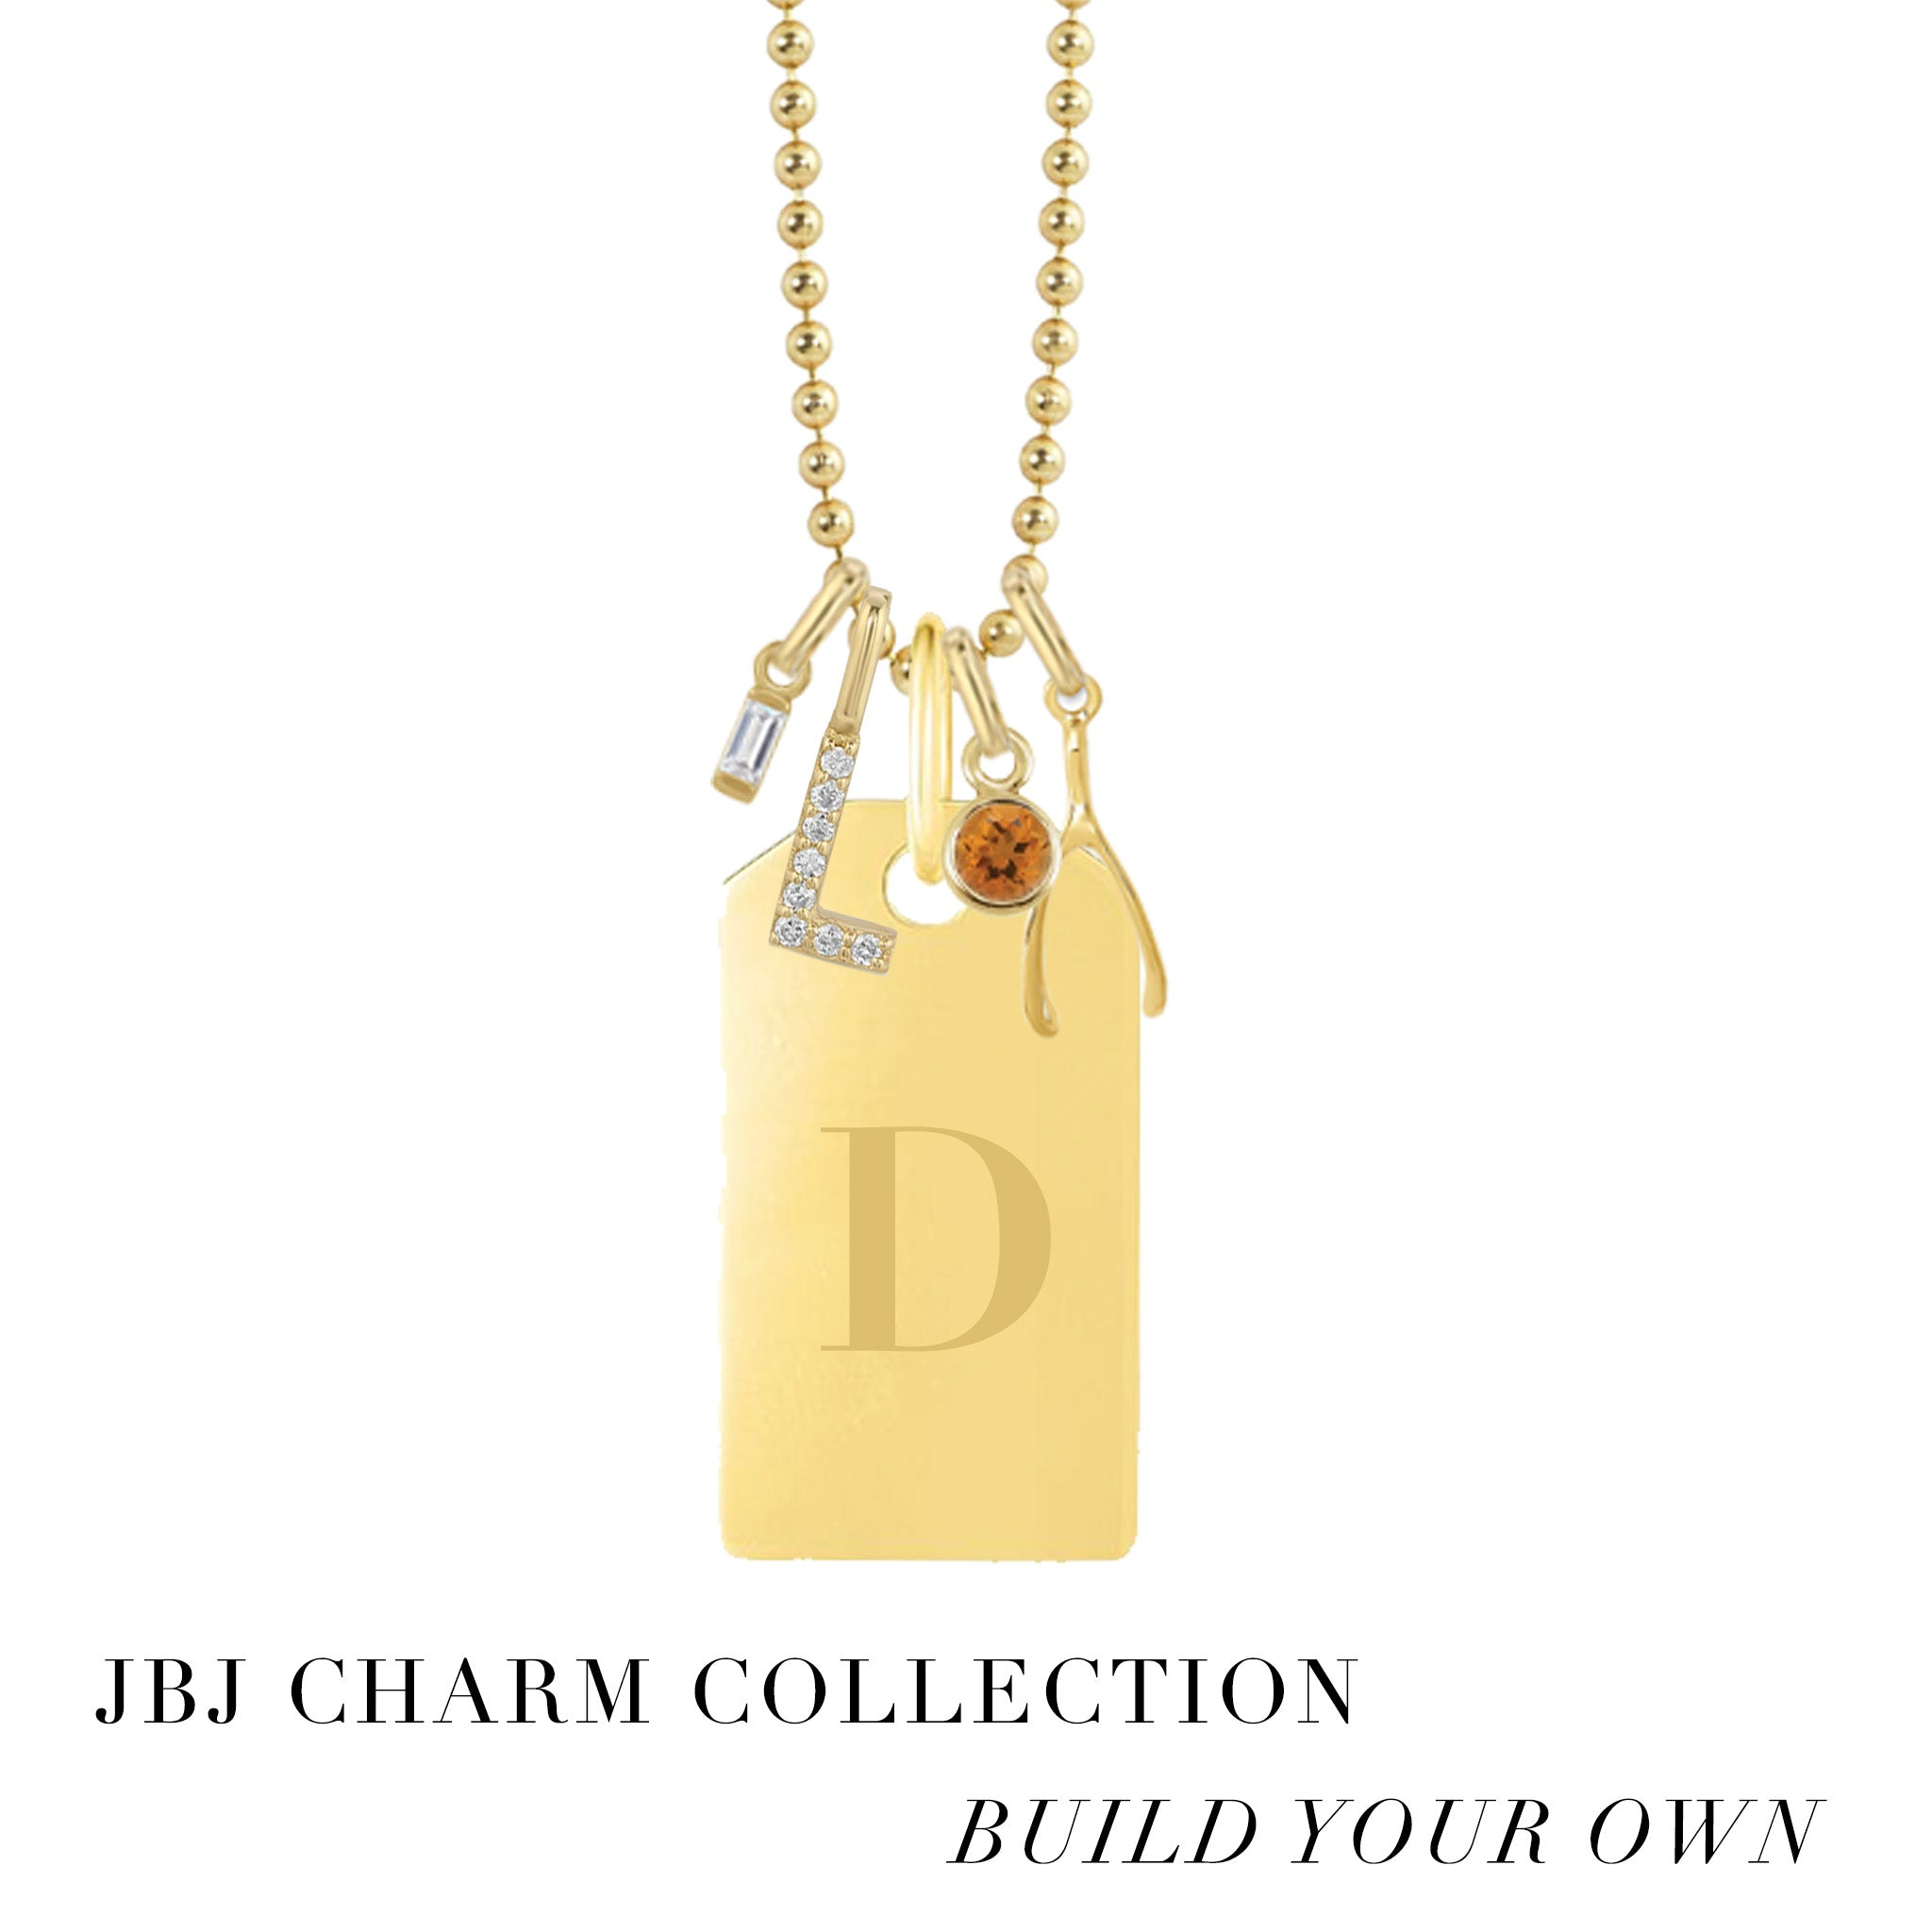 Paper Heart Charm - JBJ Charm Collection